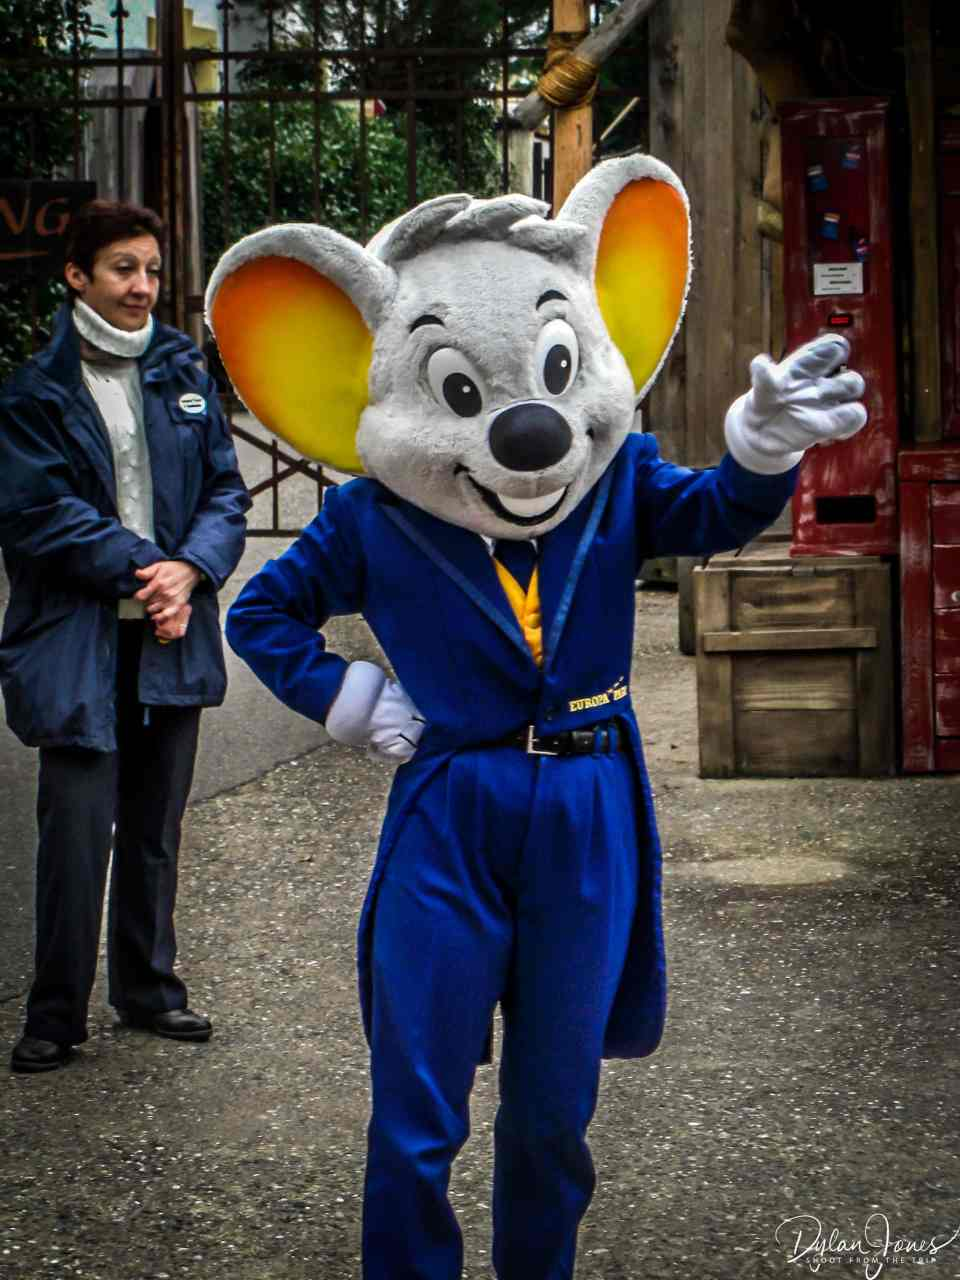 Ed Euromaus, the park's mascot.